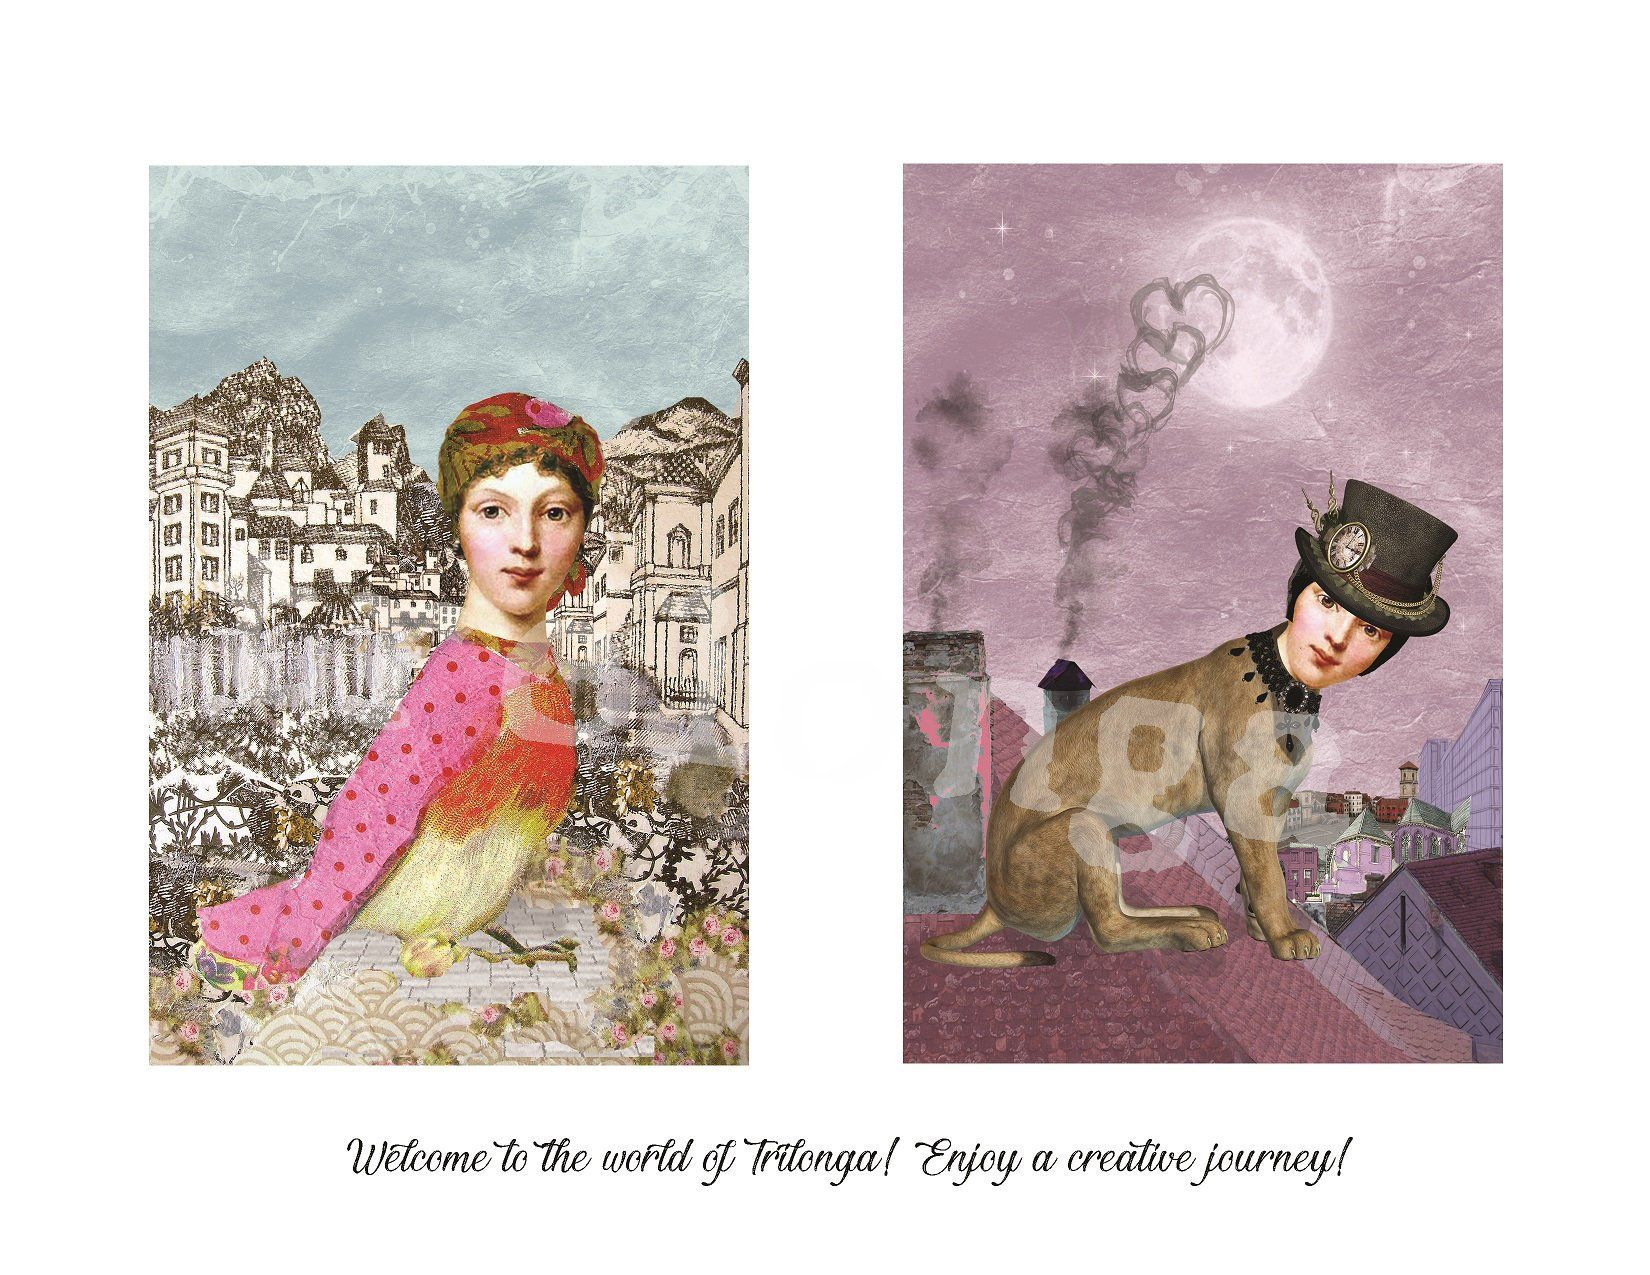 digital cards mixed media art collage Trelonga instant download collage sheet 6x4 inches digital art Digital collage sheet ETQ06